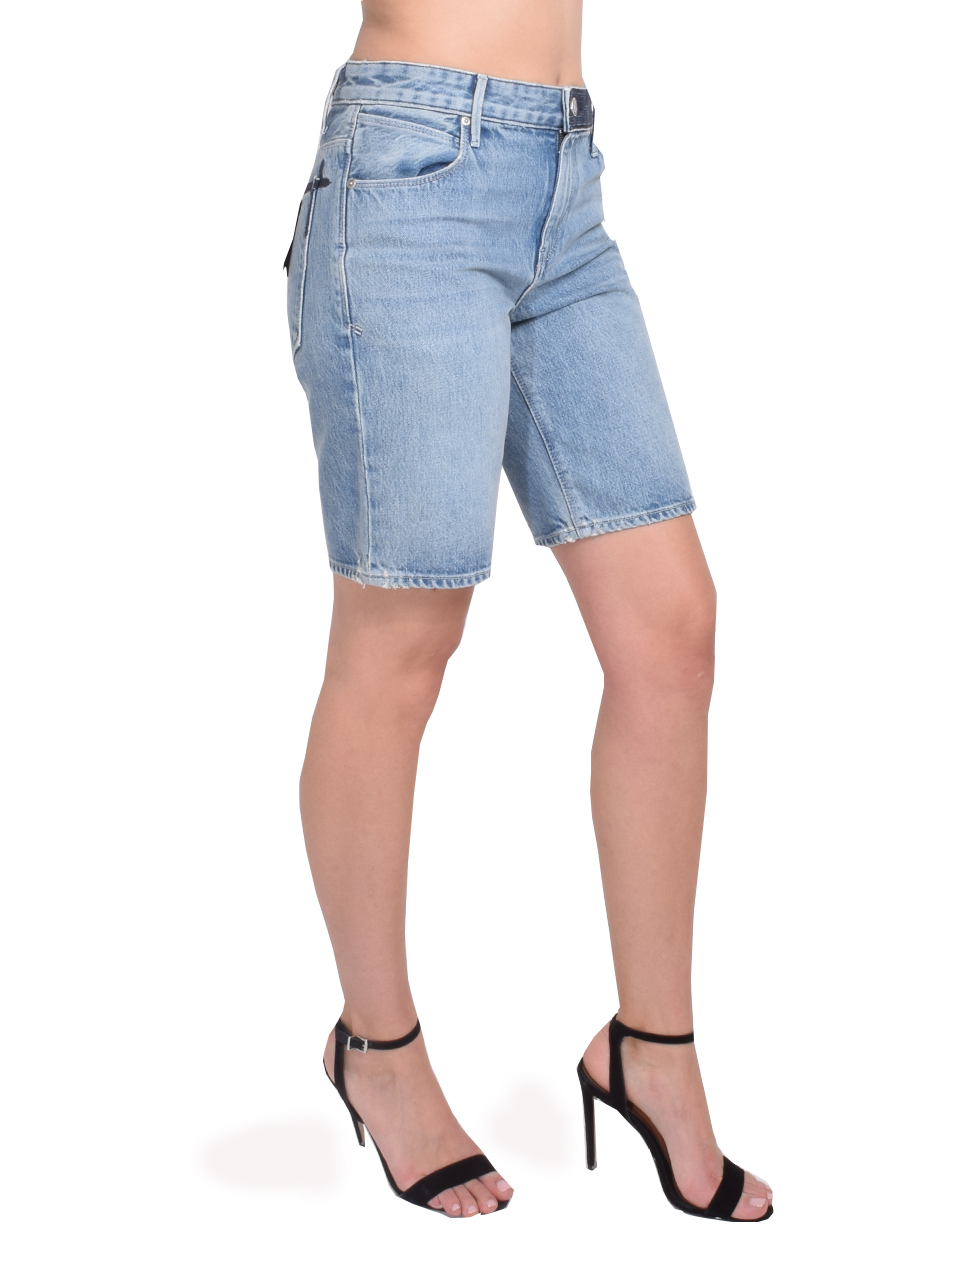 RtA Jami Baggy Short in Gallo Blue Side View